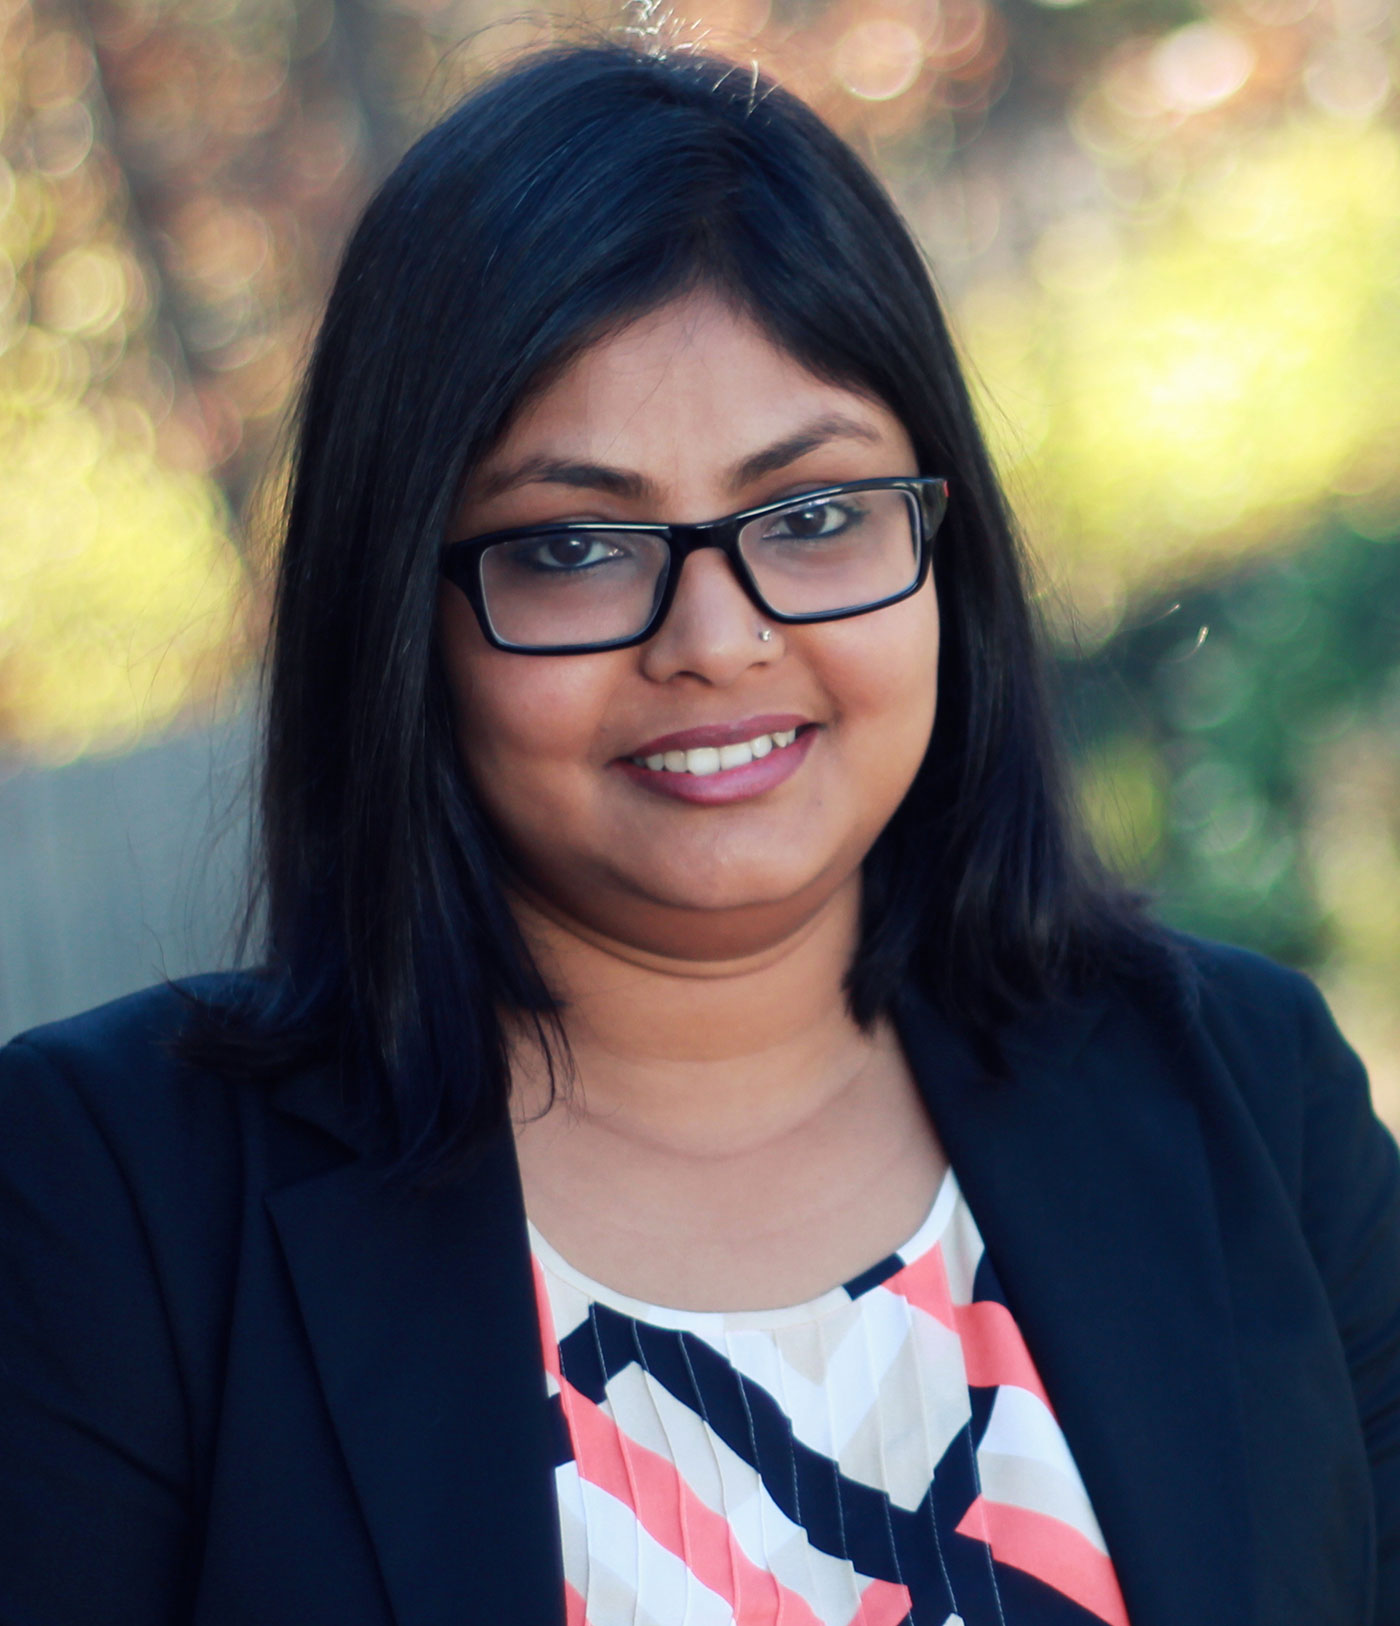 Urmitapa Dutta, Ph.D.